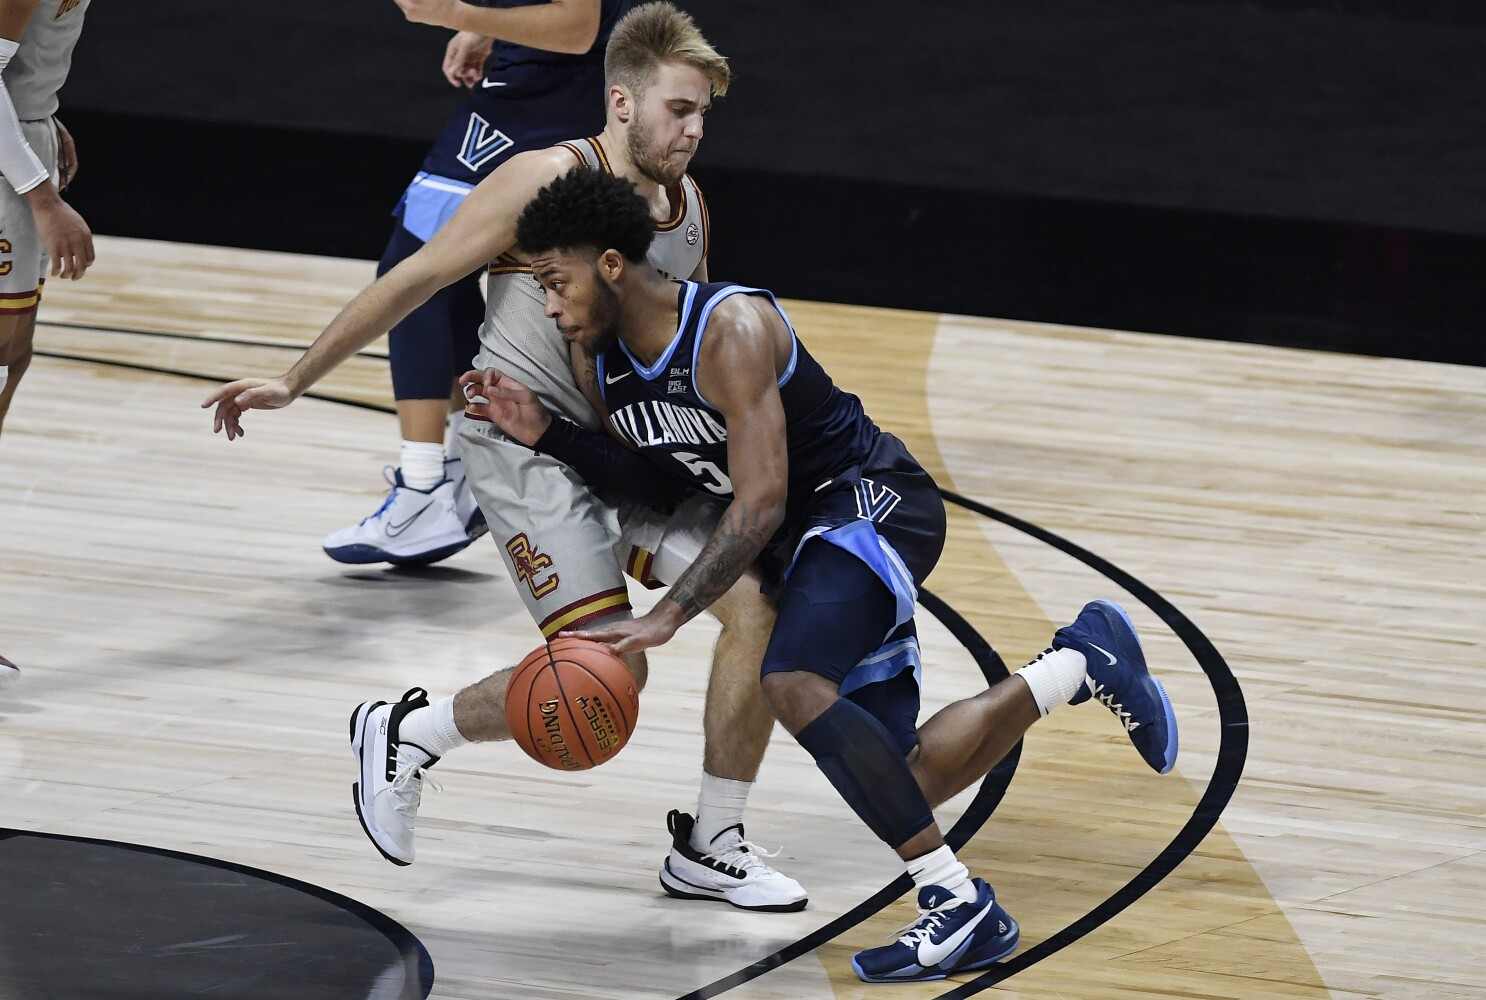 College Basketball No 3 Villanova Comes Back To Beat Boston College In Opener Los Angeles Times